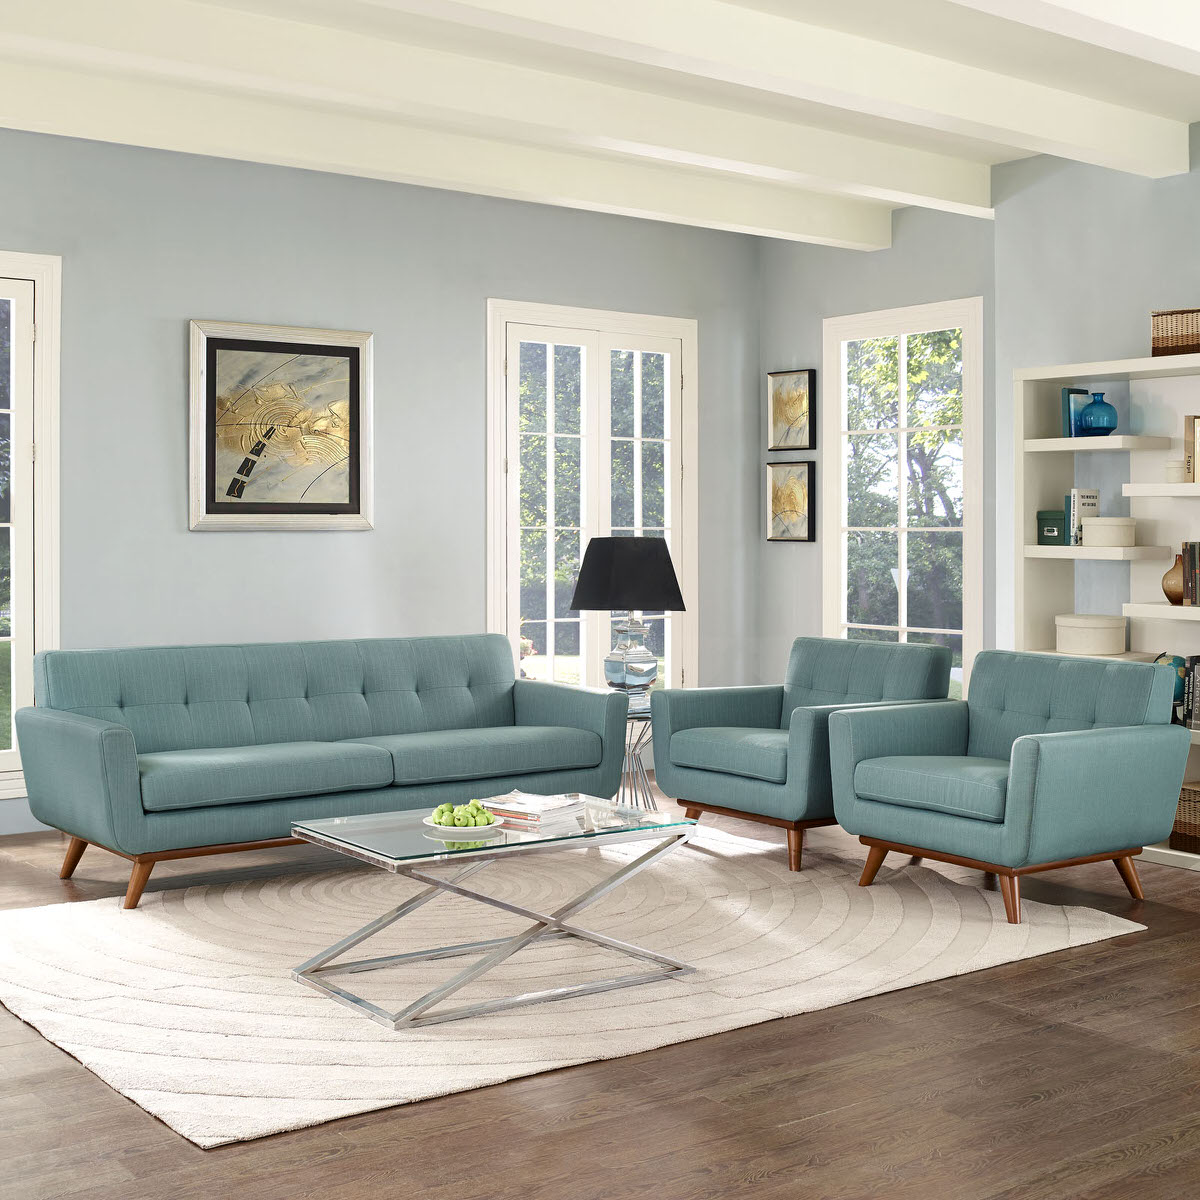 Engage Armchairs and Sofa Set of 3 Laguna by Modern Living